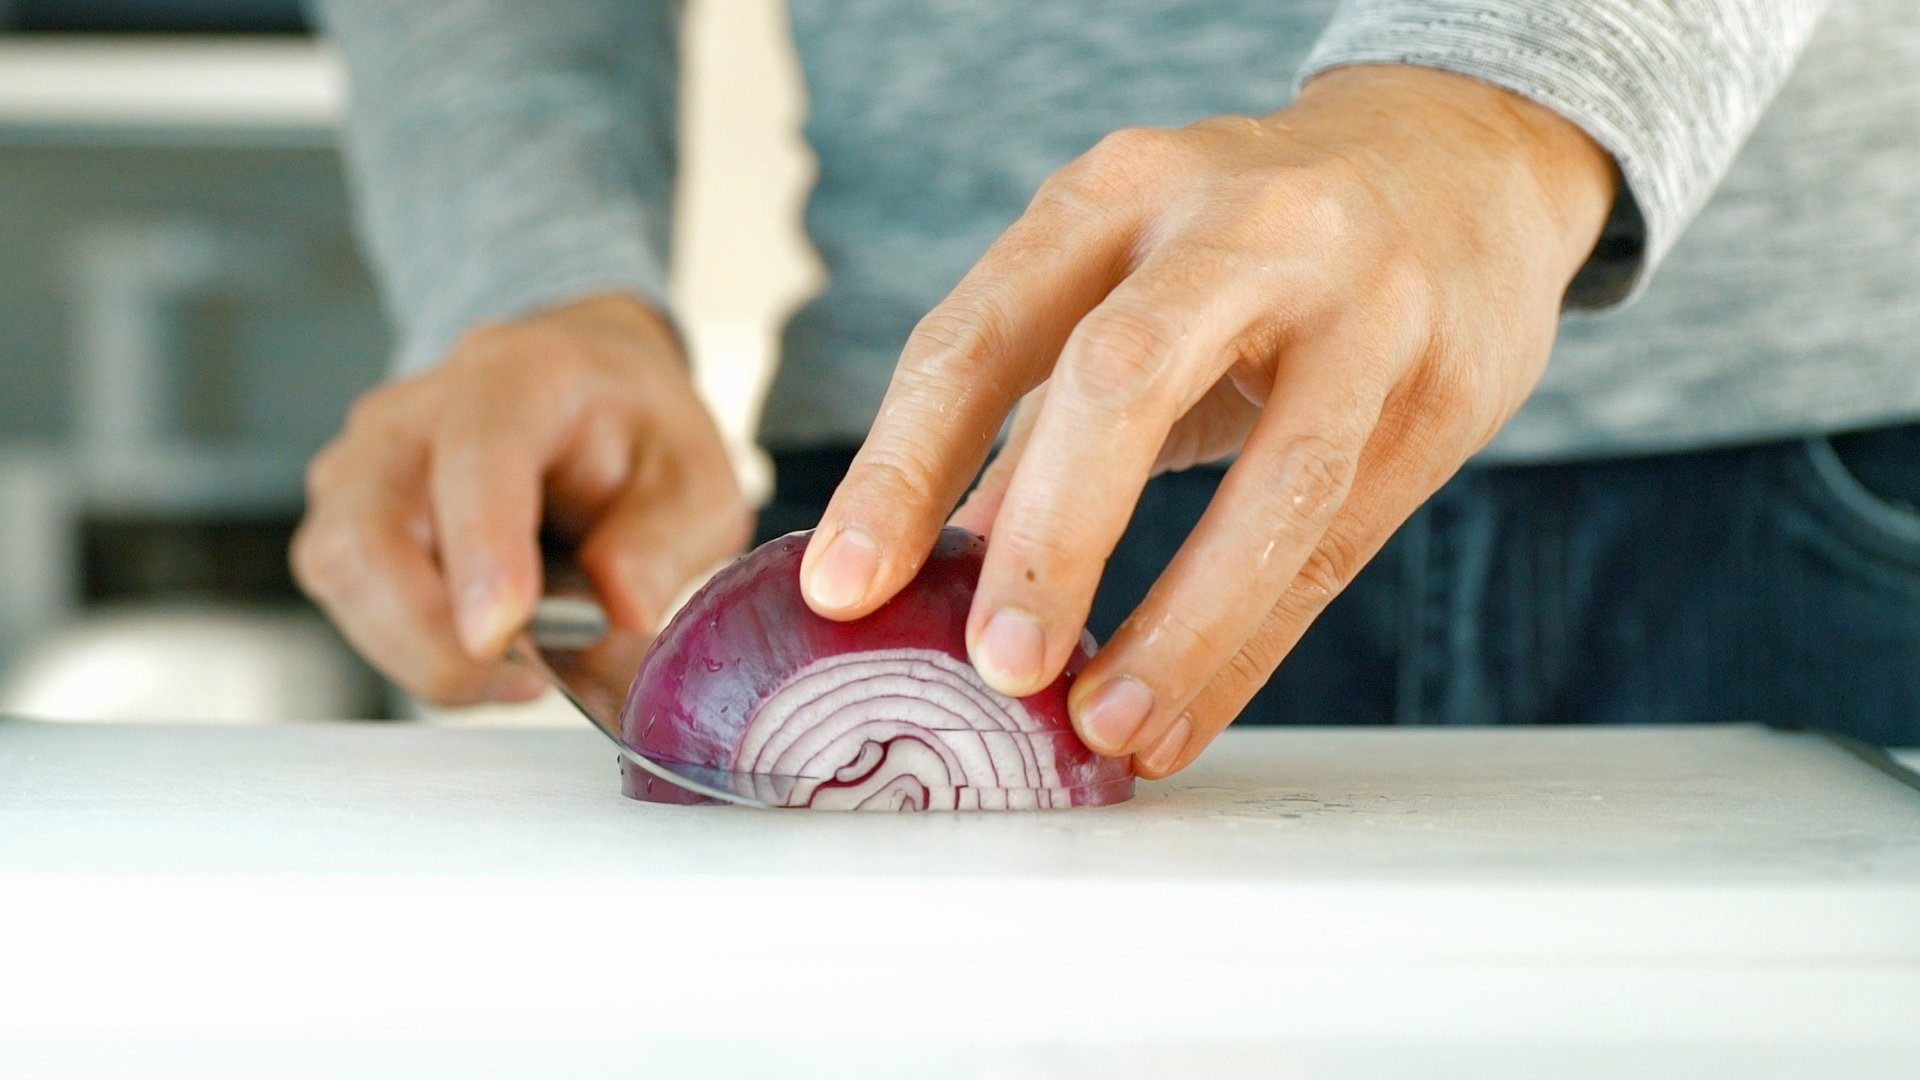 Cutting slits in the side of the onion makes it easier to chop.